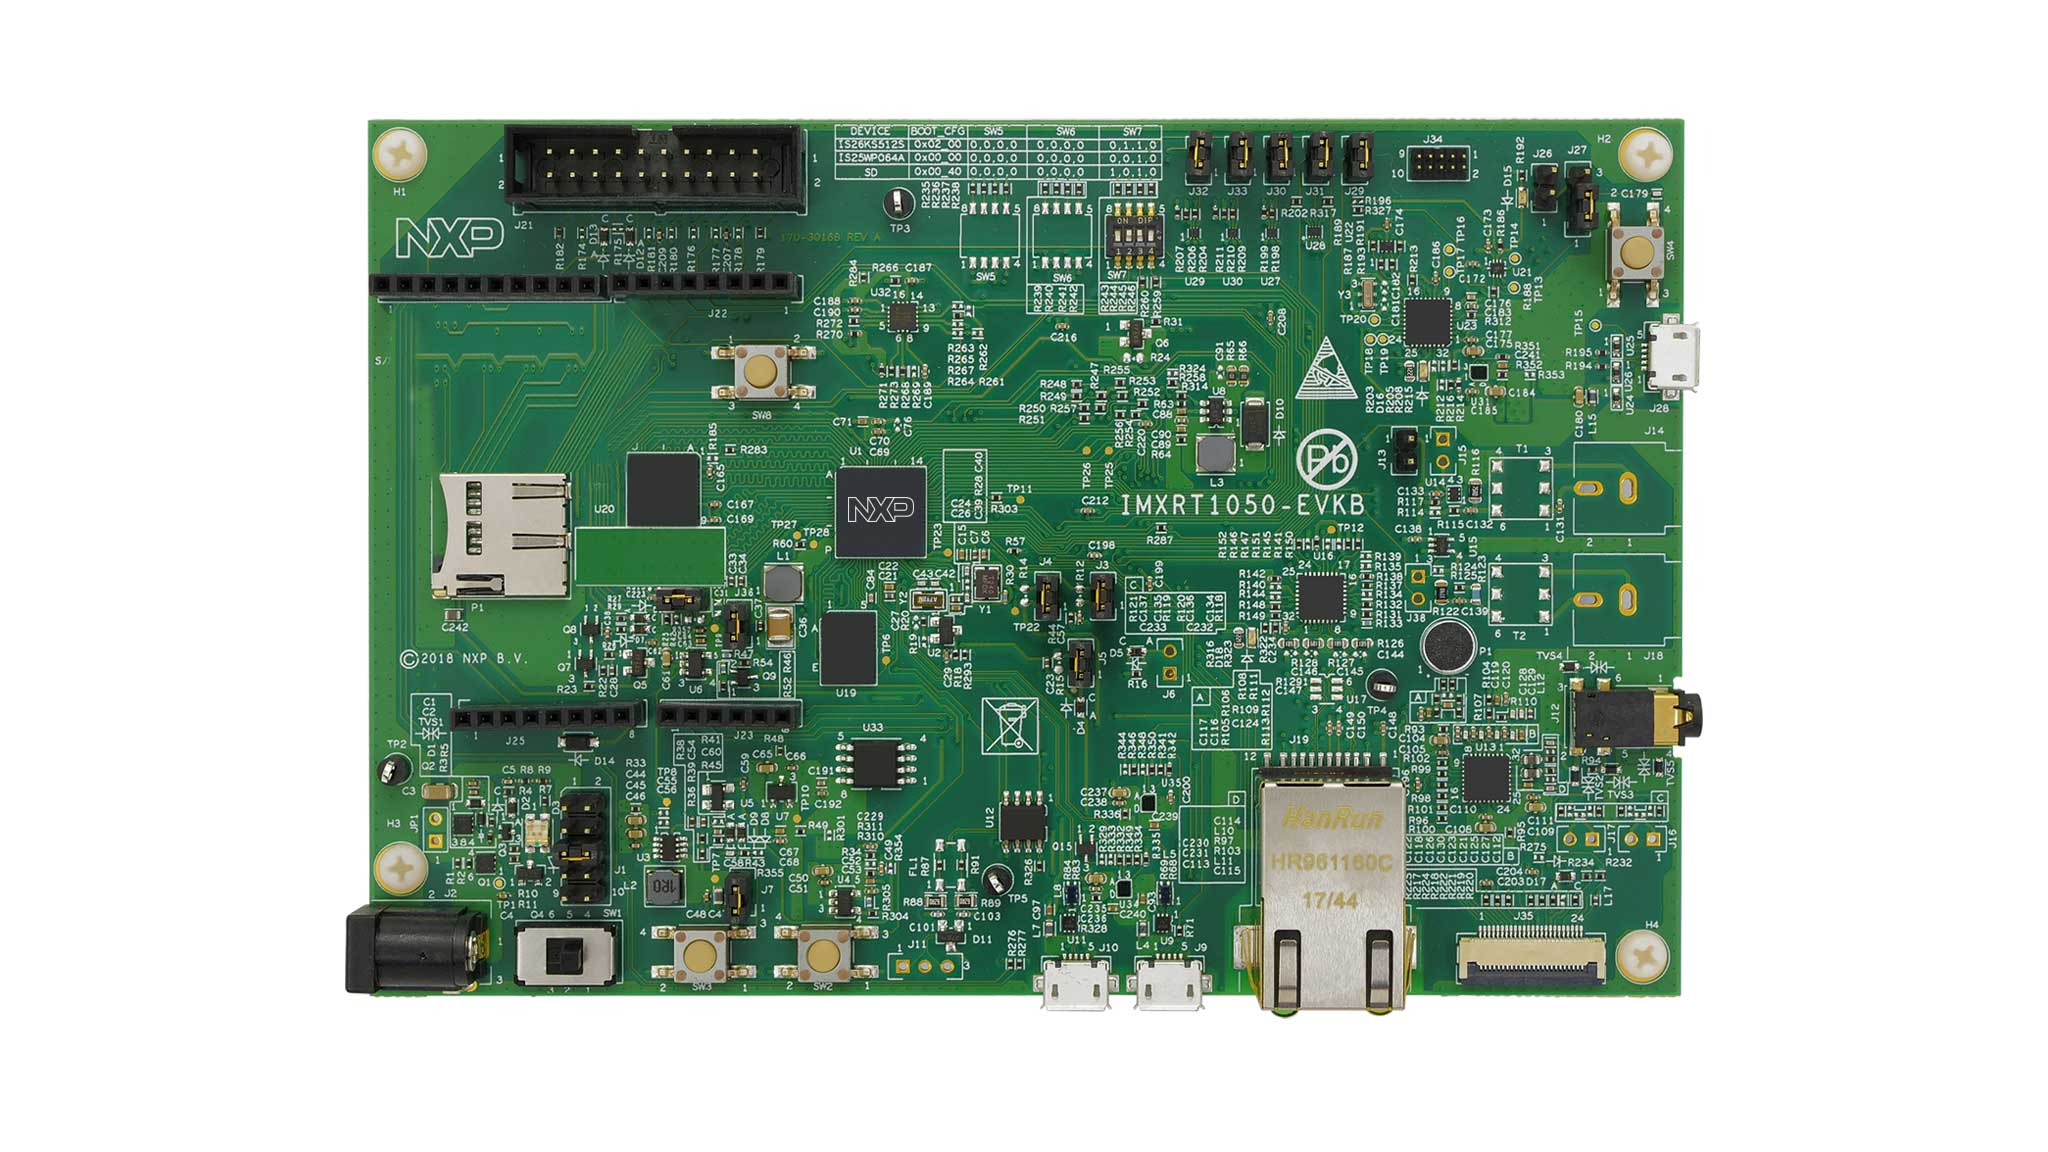 MIMXRT1050-EVK low cost evaluation kit for Cortex-M7